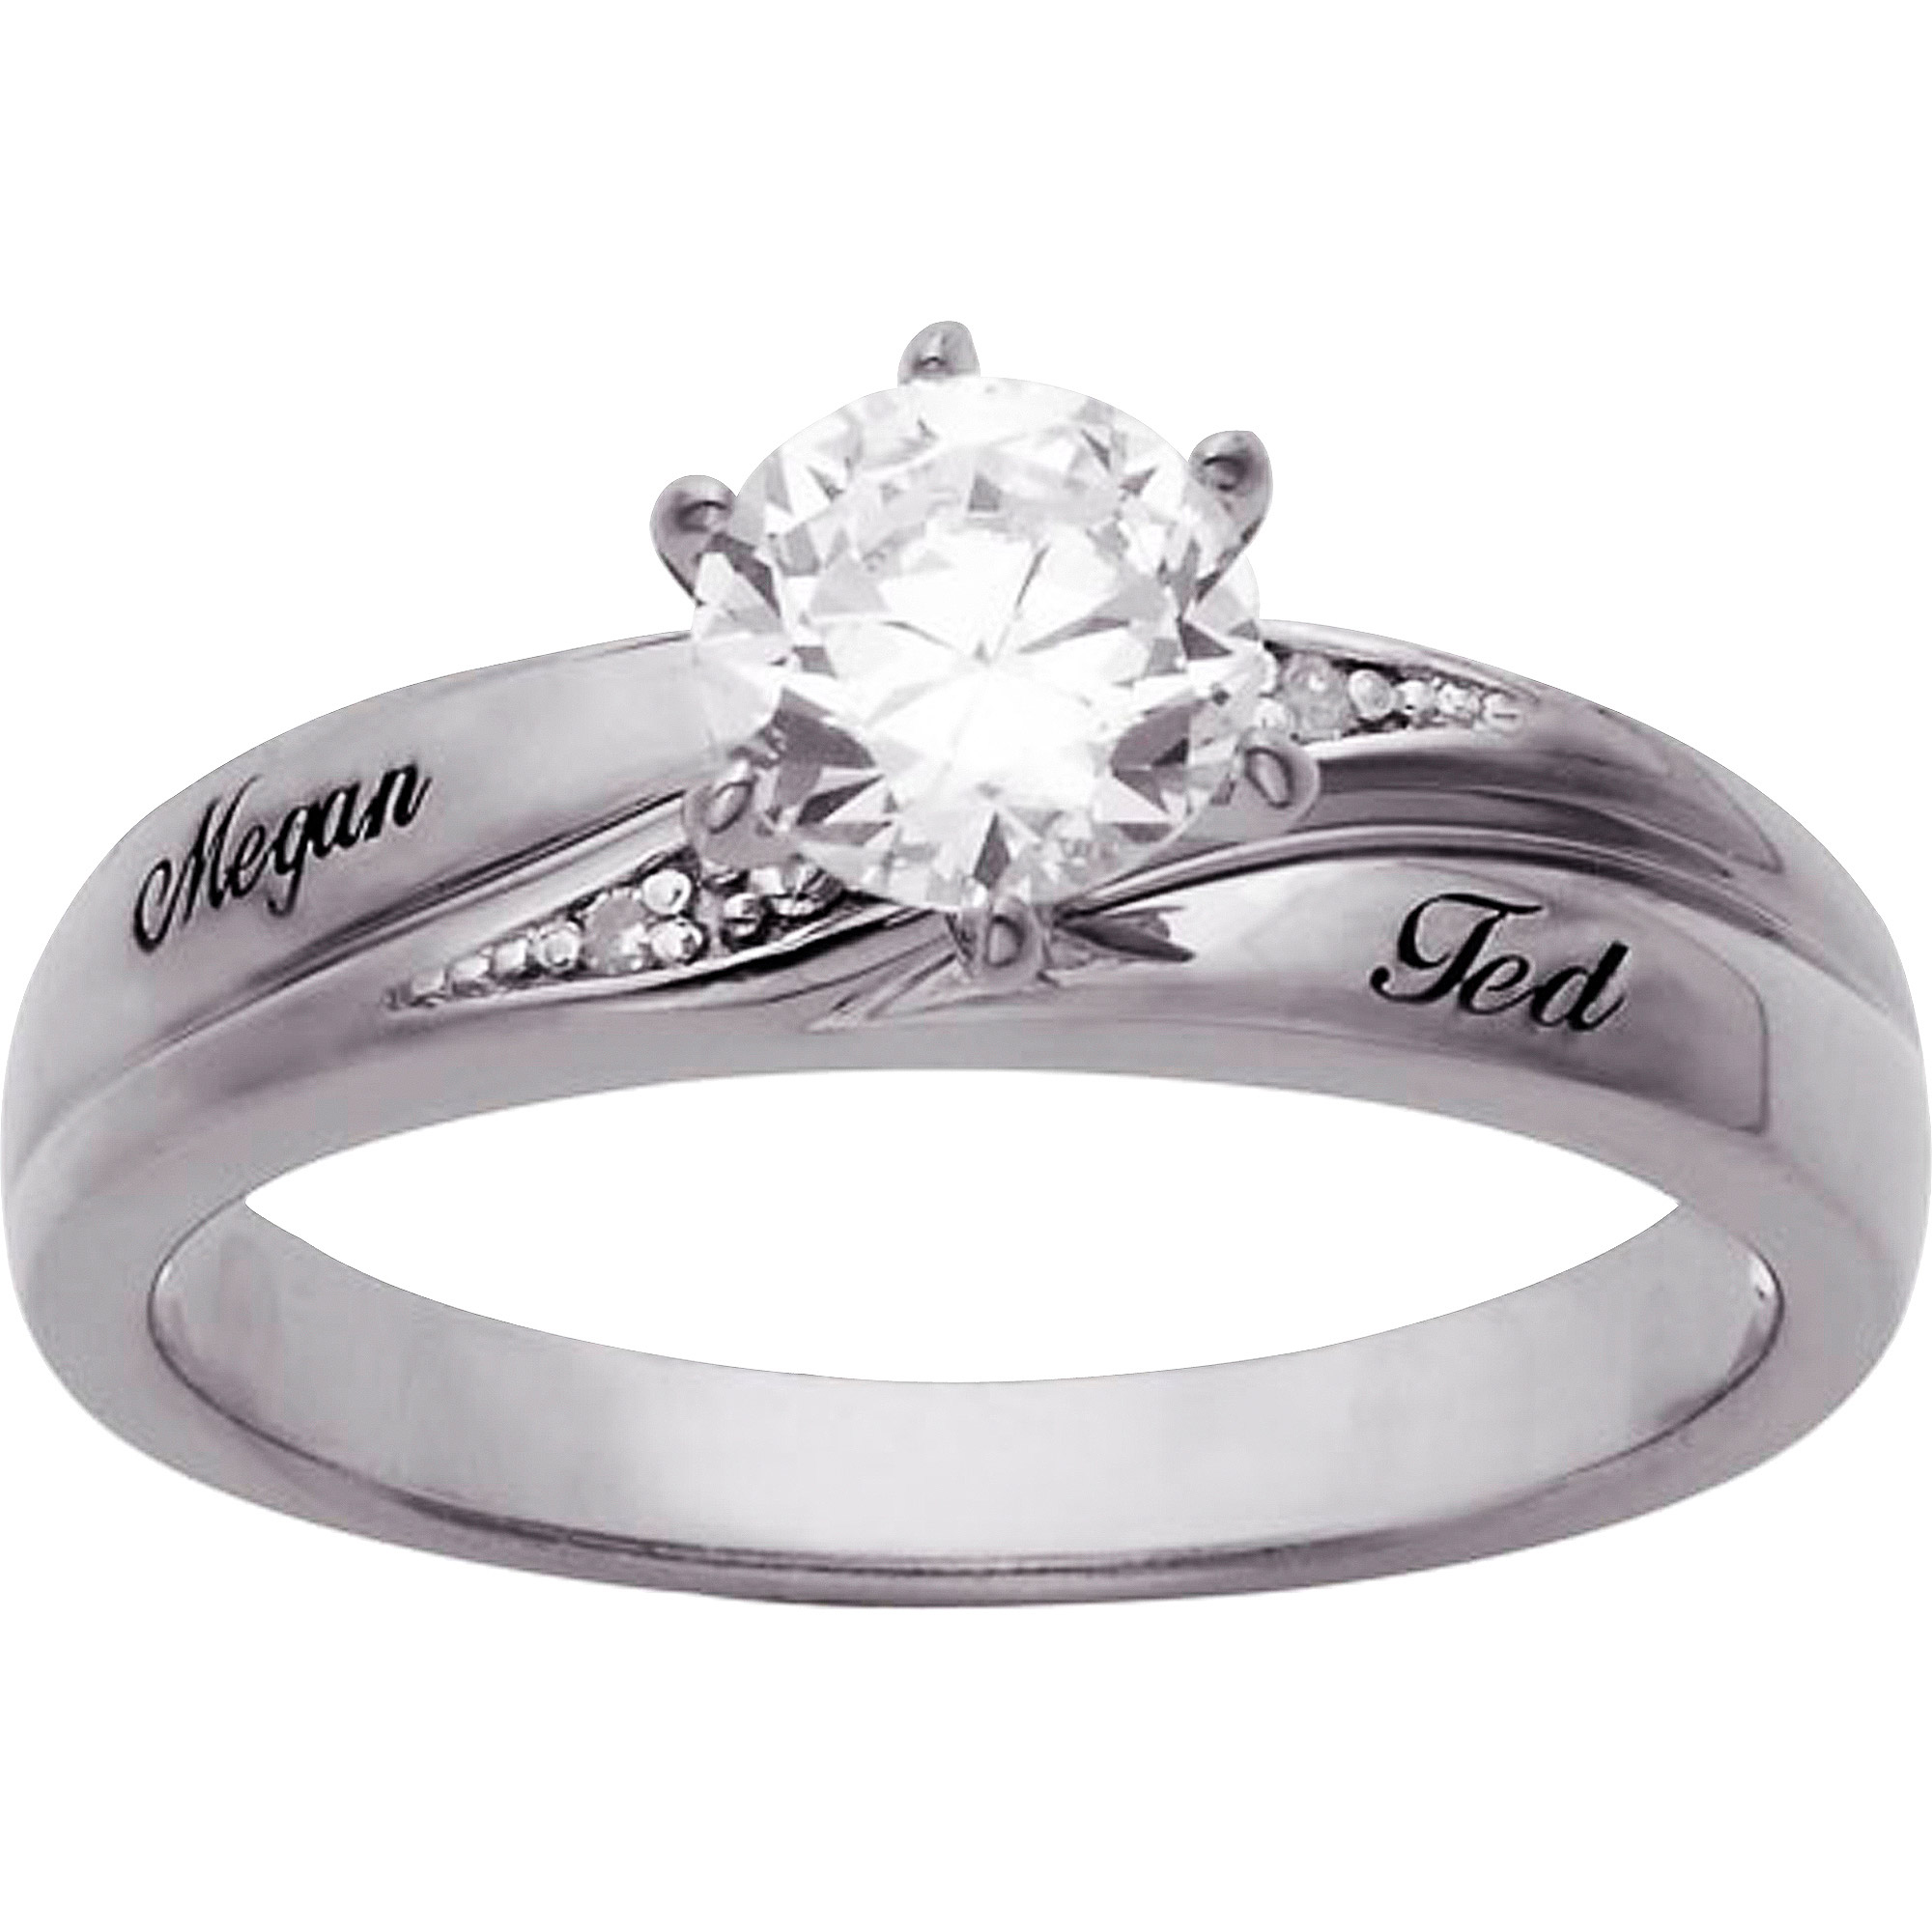 5 Carat Tgw Cubic Zirconia Engagement Ring In Sterling  Silver  Walmart